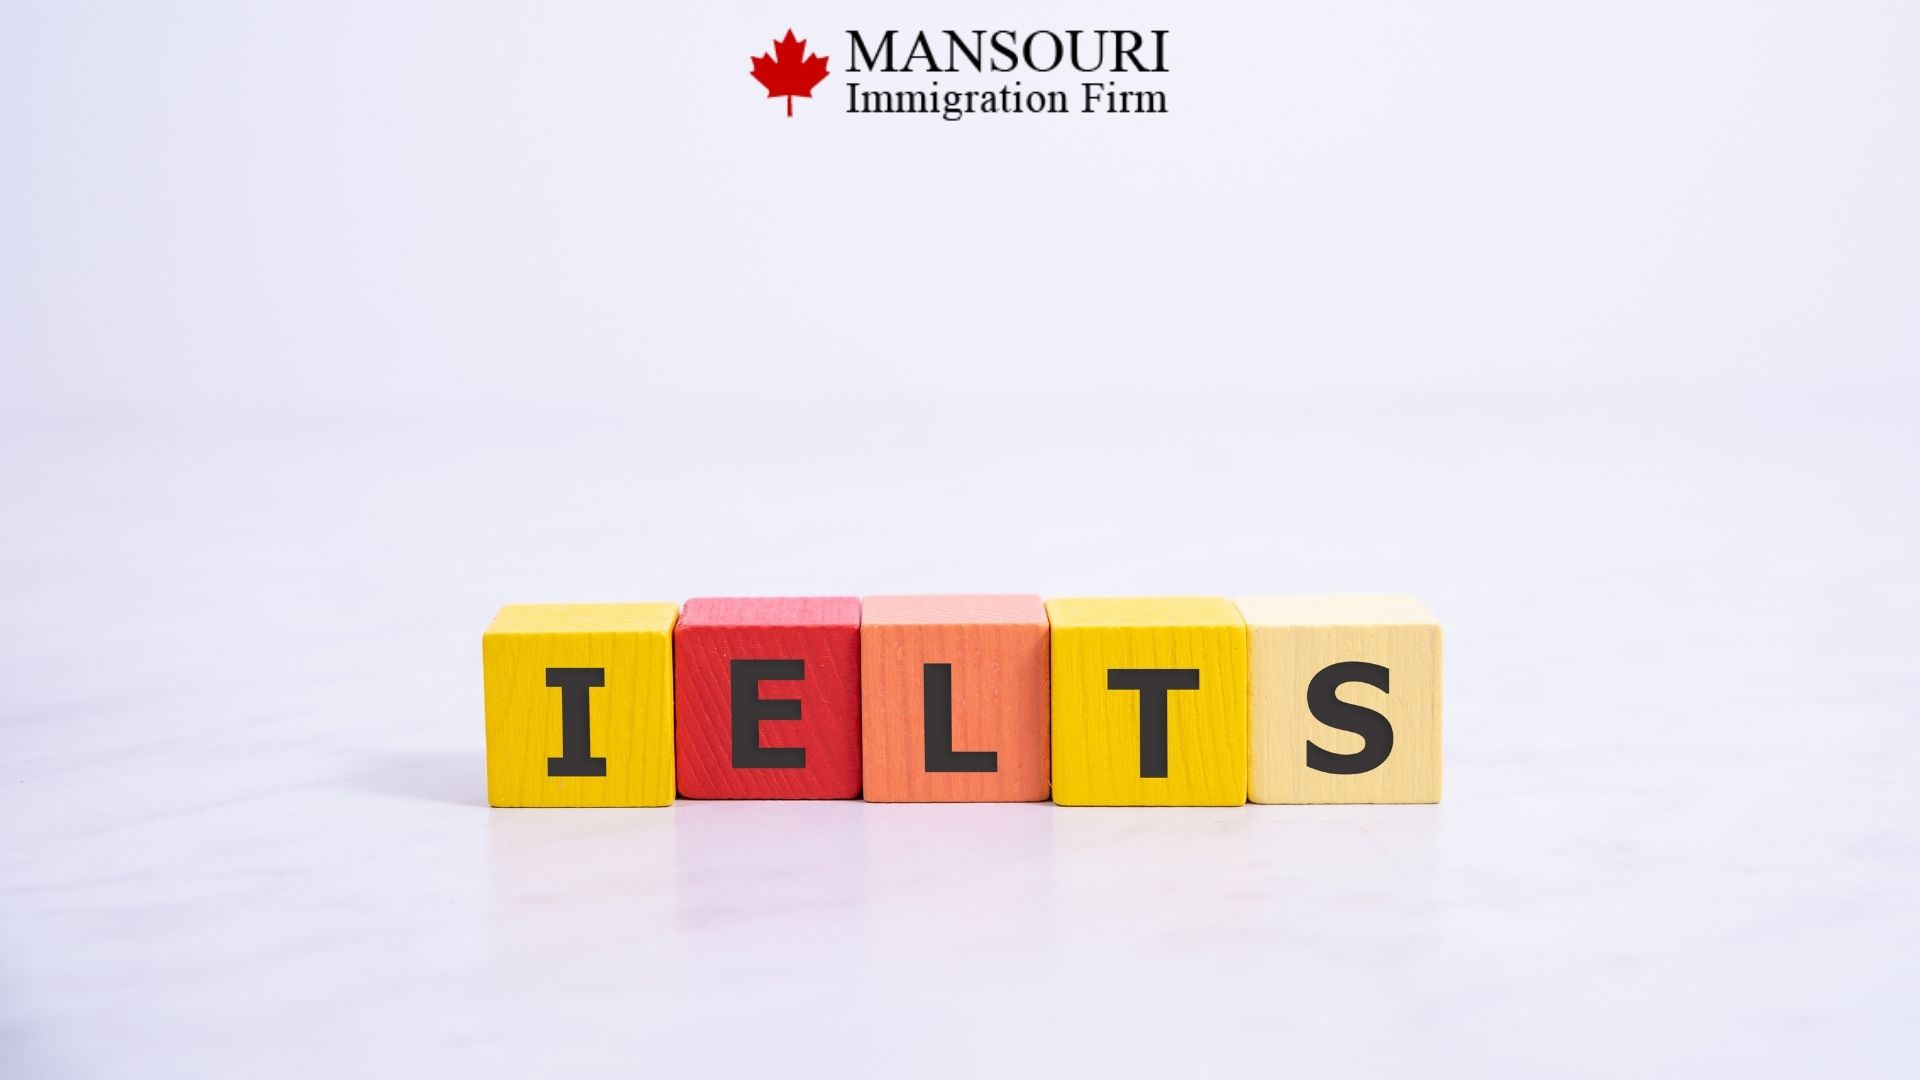 Students will be able to take IELTS Online starting 2022